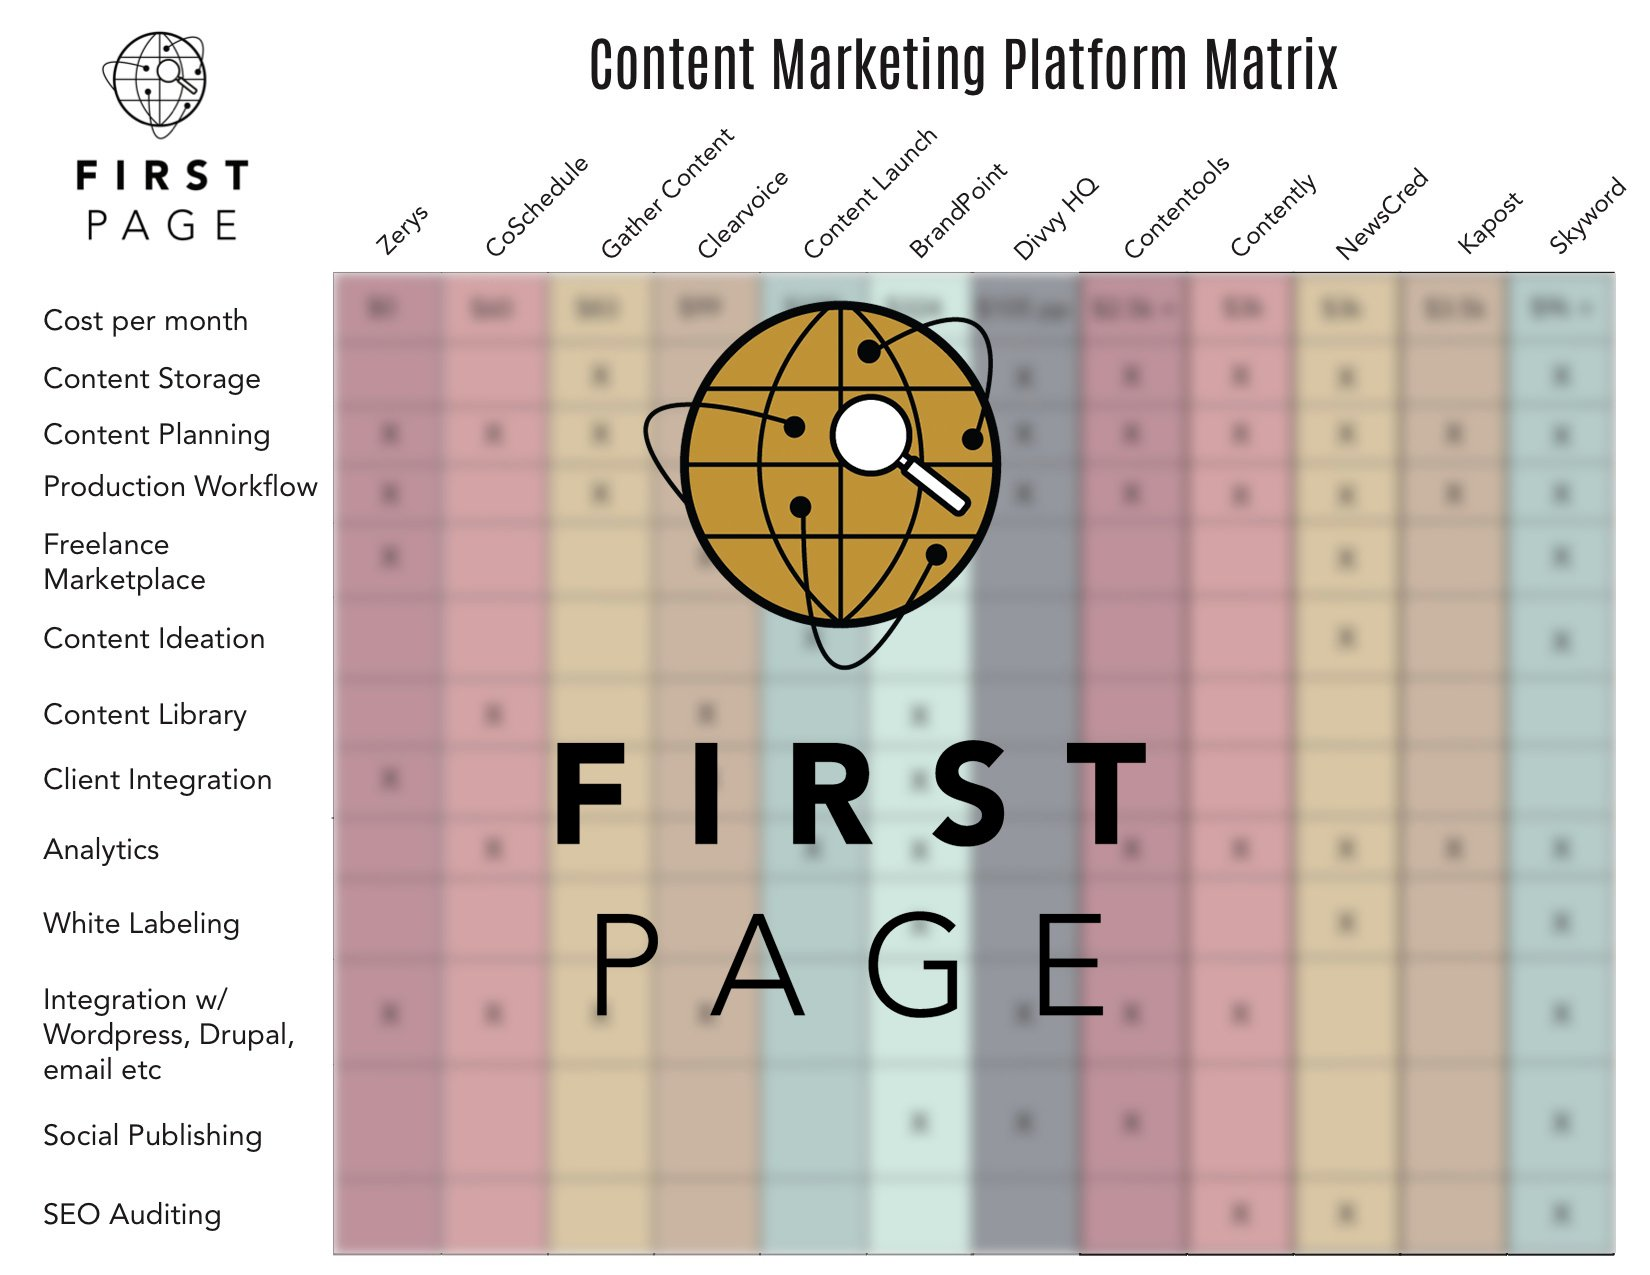 Content Marketing Platform Matrix Overlay-1